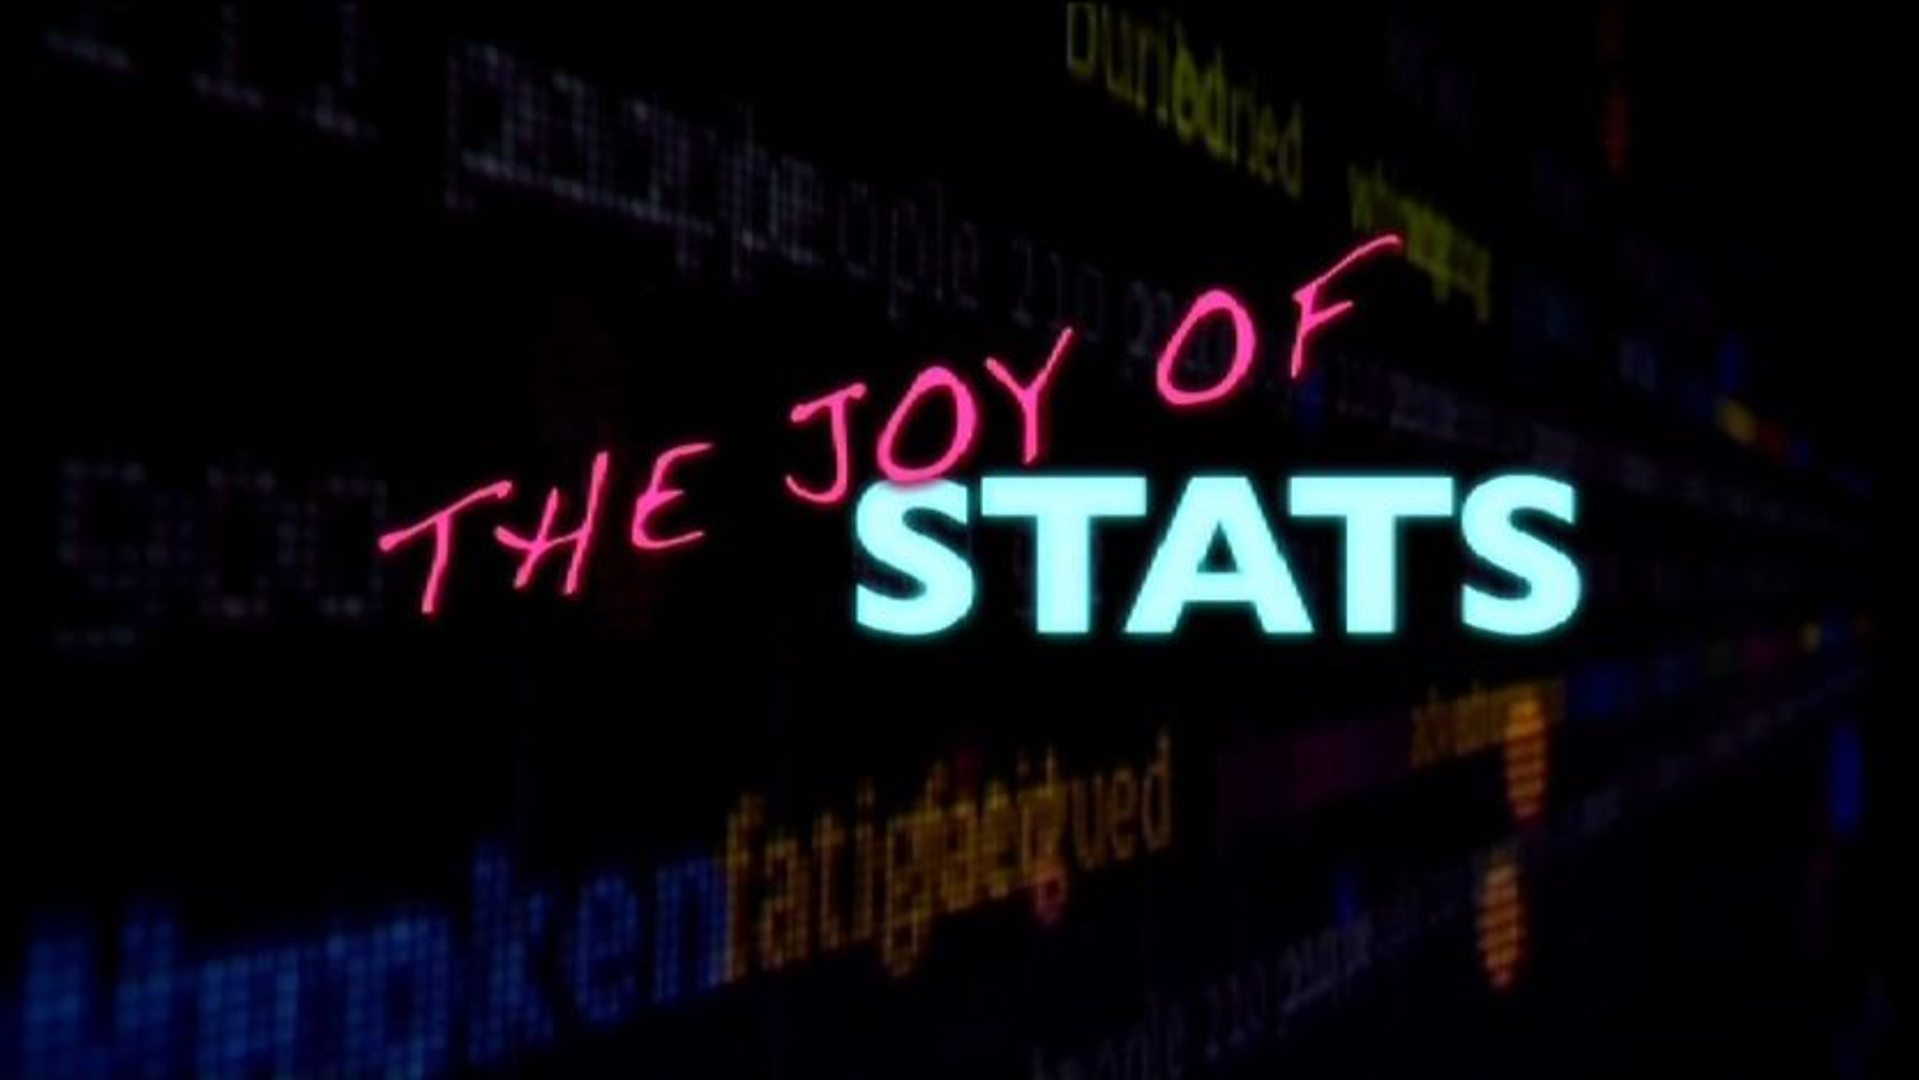 FreeDoc #1 — The joy of stats